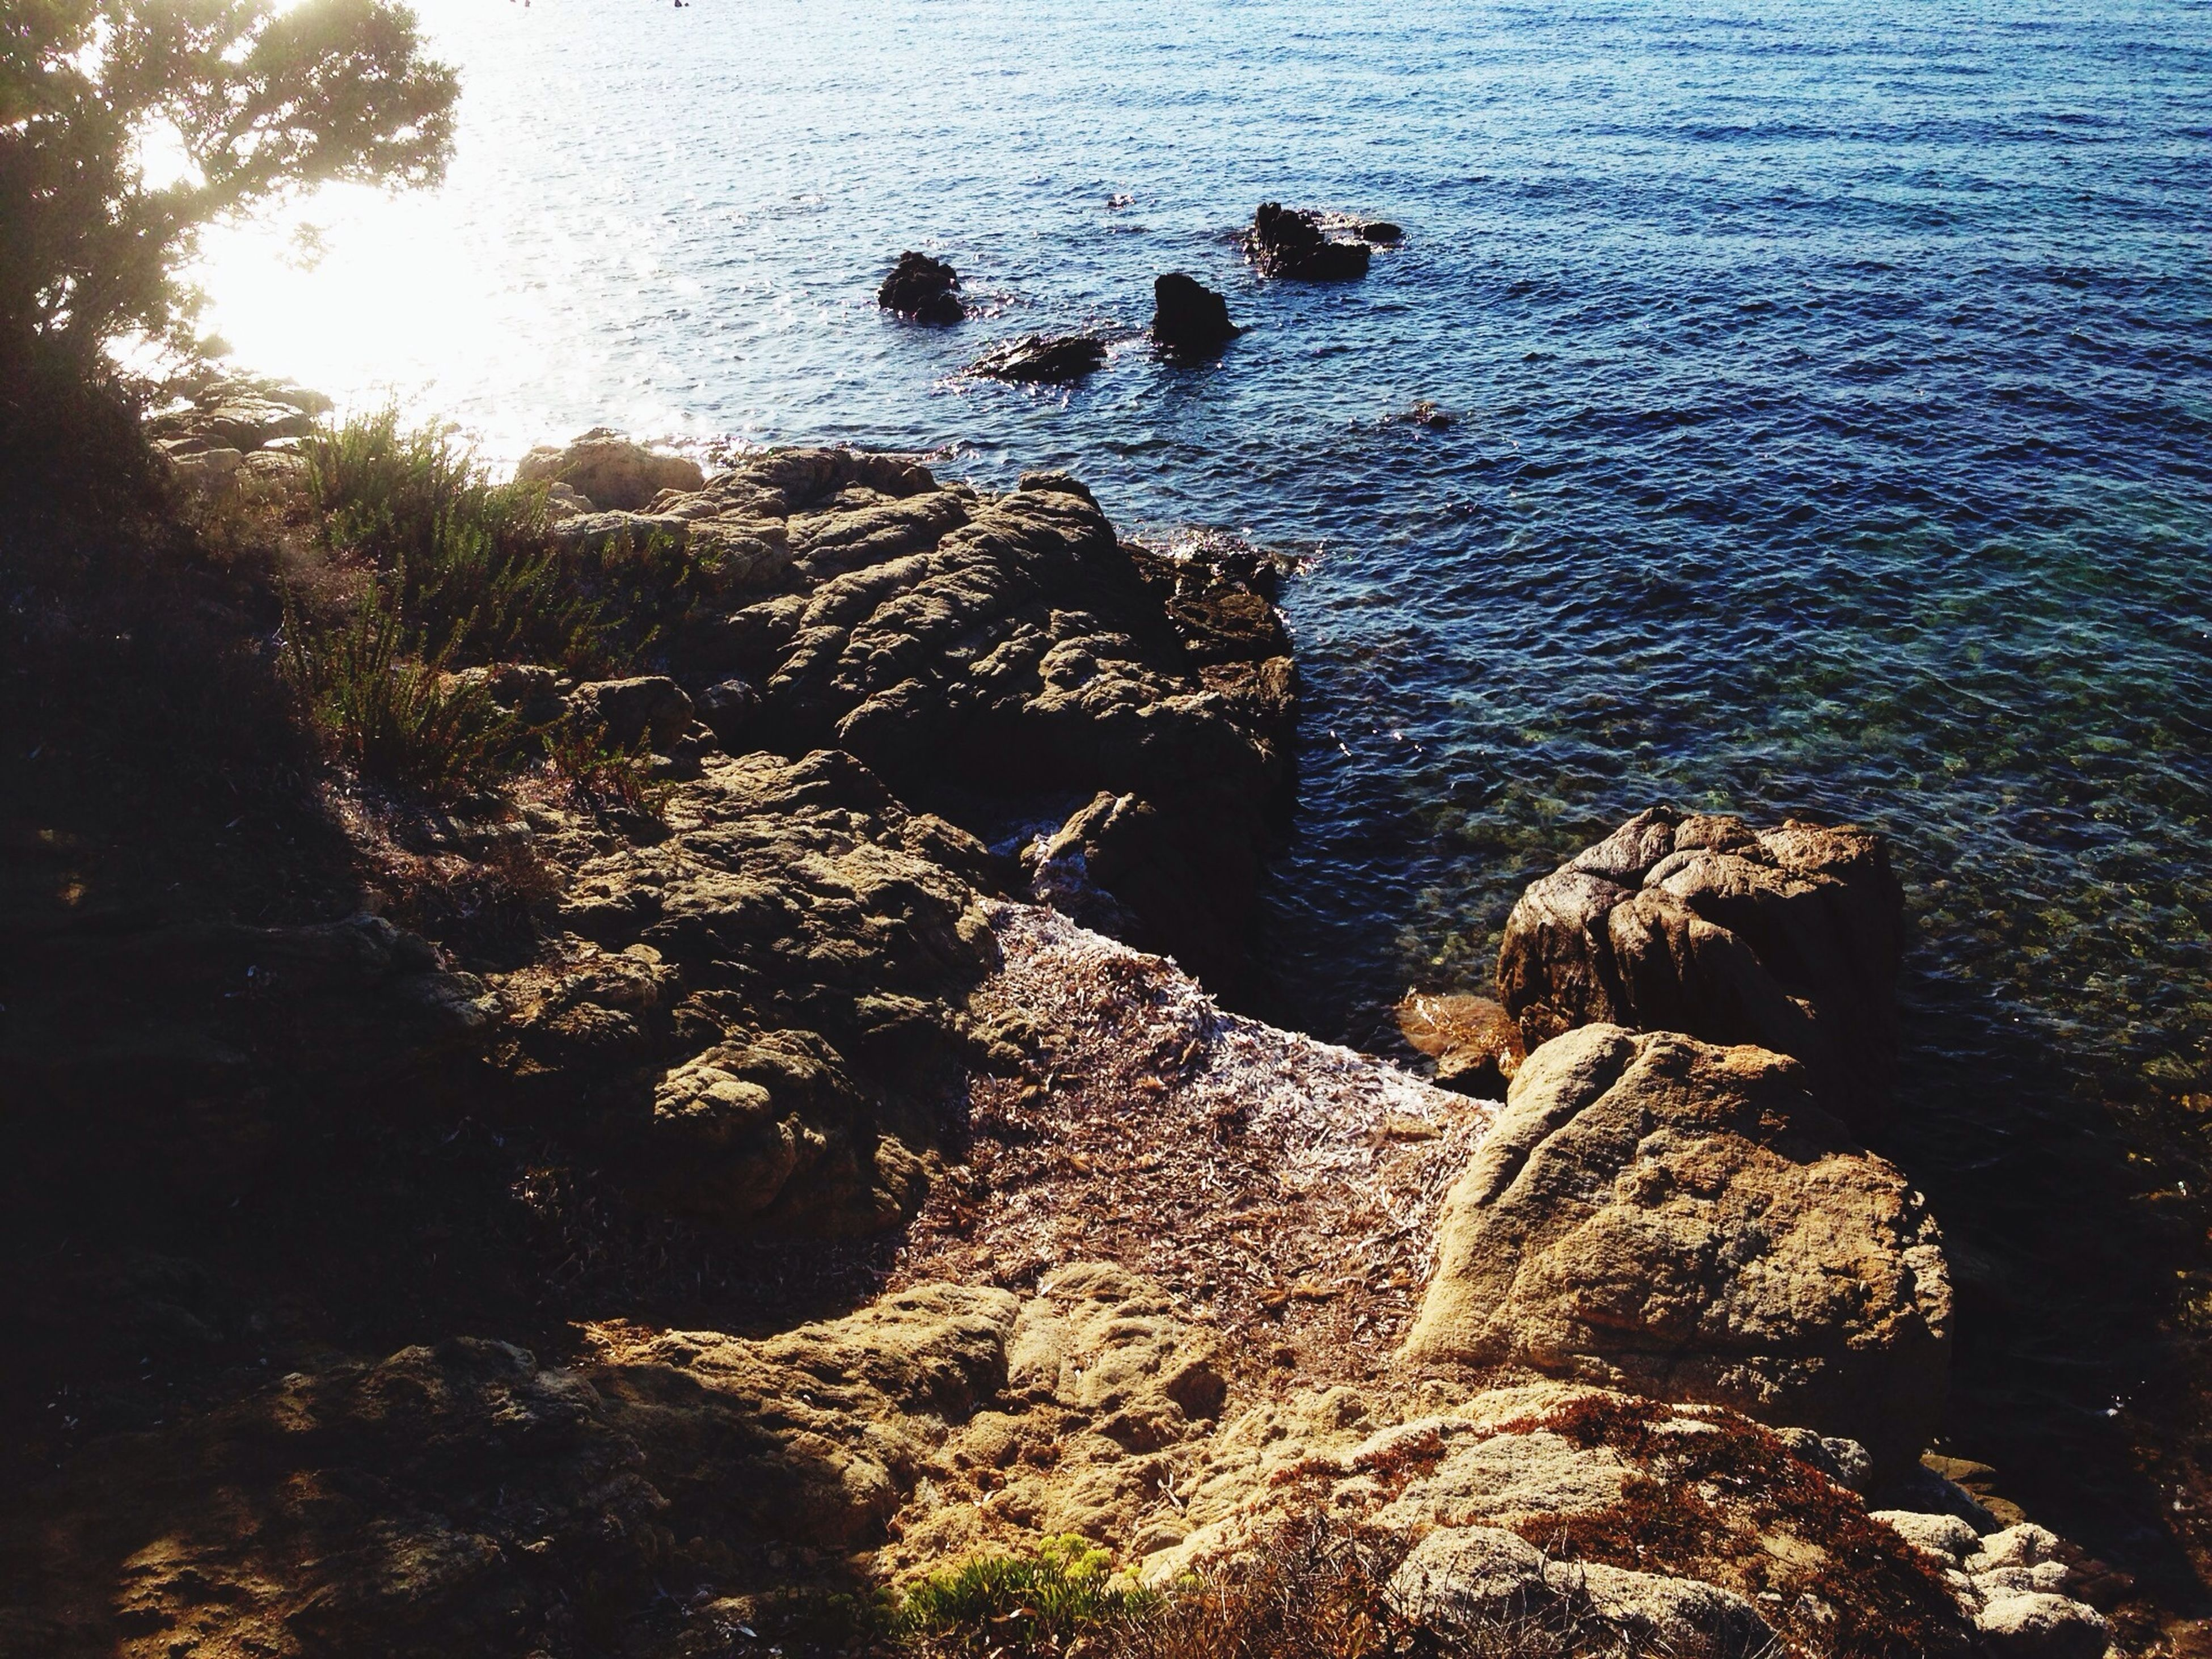 water, rock - object, high angle view, tranquility, rock formation, nature, tranquil scene, beauty in nature, scenics, sea, rock, sunlight, shore, idyllic, day, outdoors, no people, non-urban scene, beach, rippled